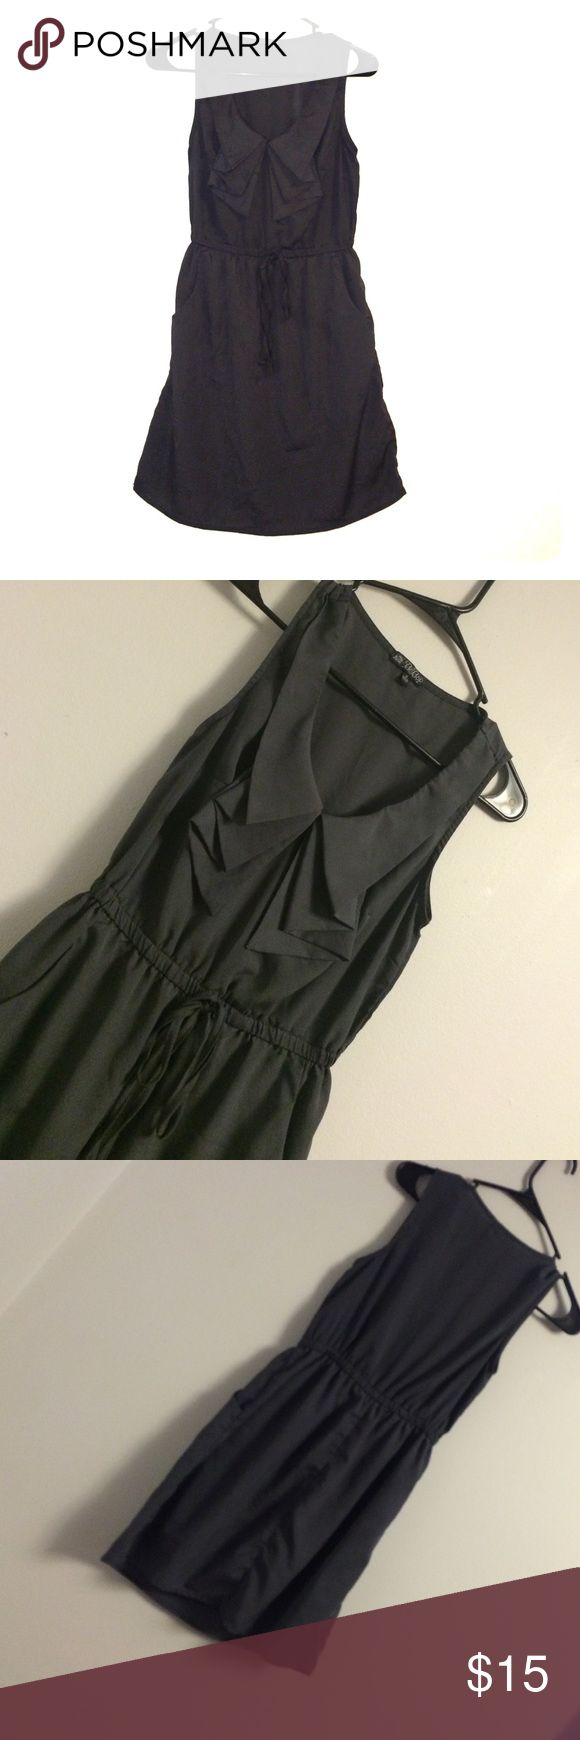 BeBop Gray Elastic Waist Sleeveless Ruffle Dress This dress is in good condition with normal wear. Bust is about 16.5 inches. Length is about 31.5 inches. It's been washed and steamed BeBop Dresses